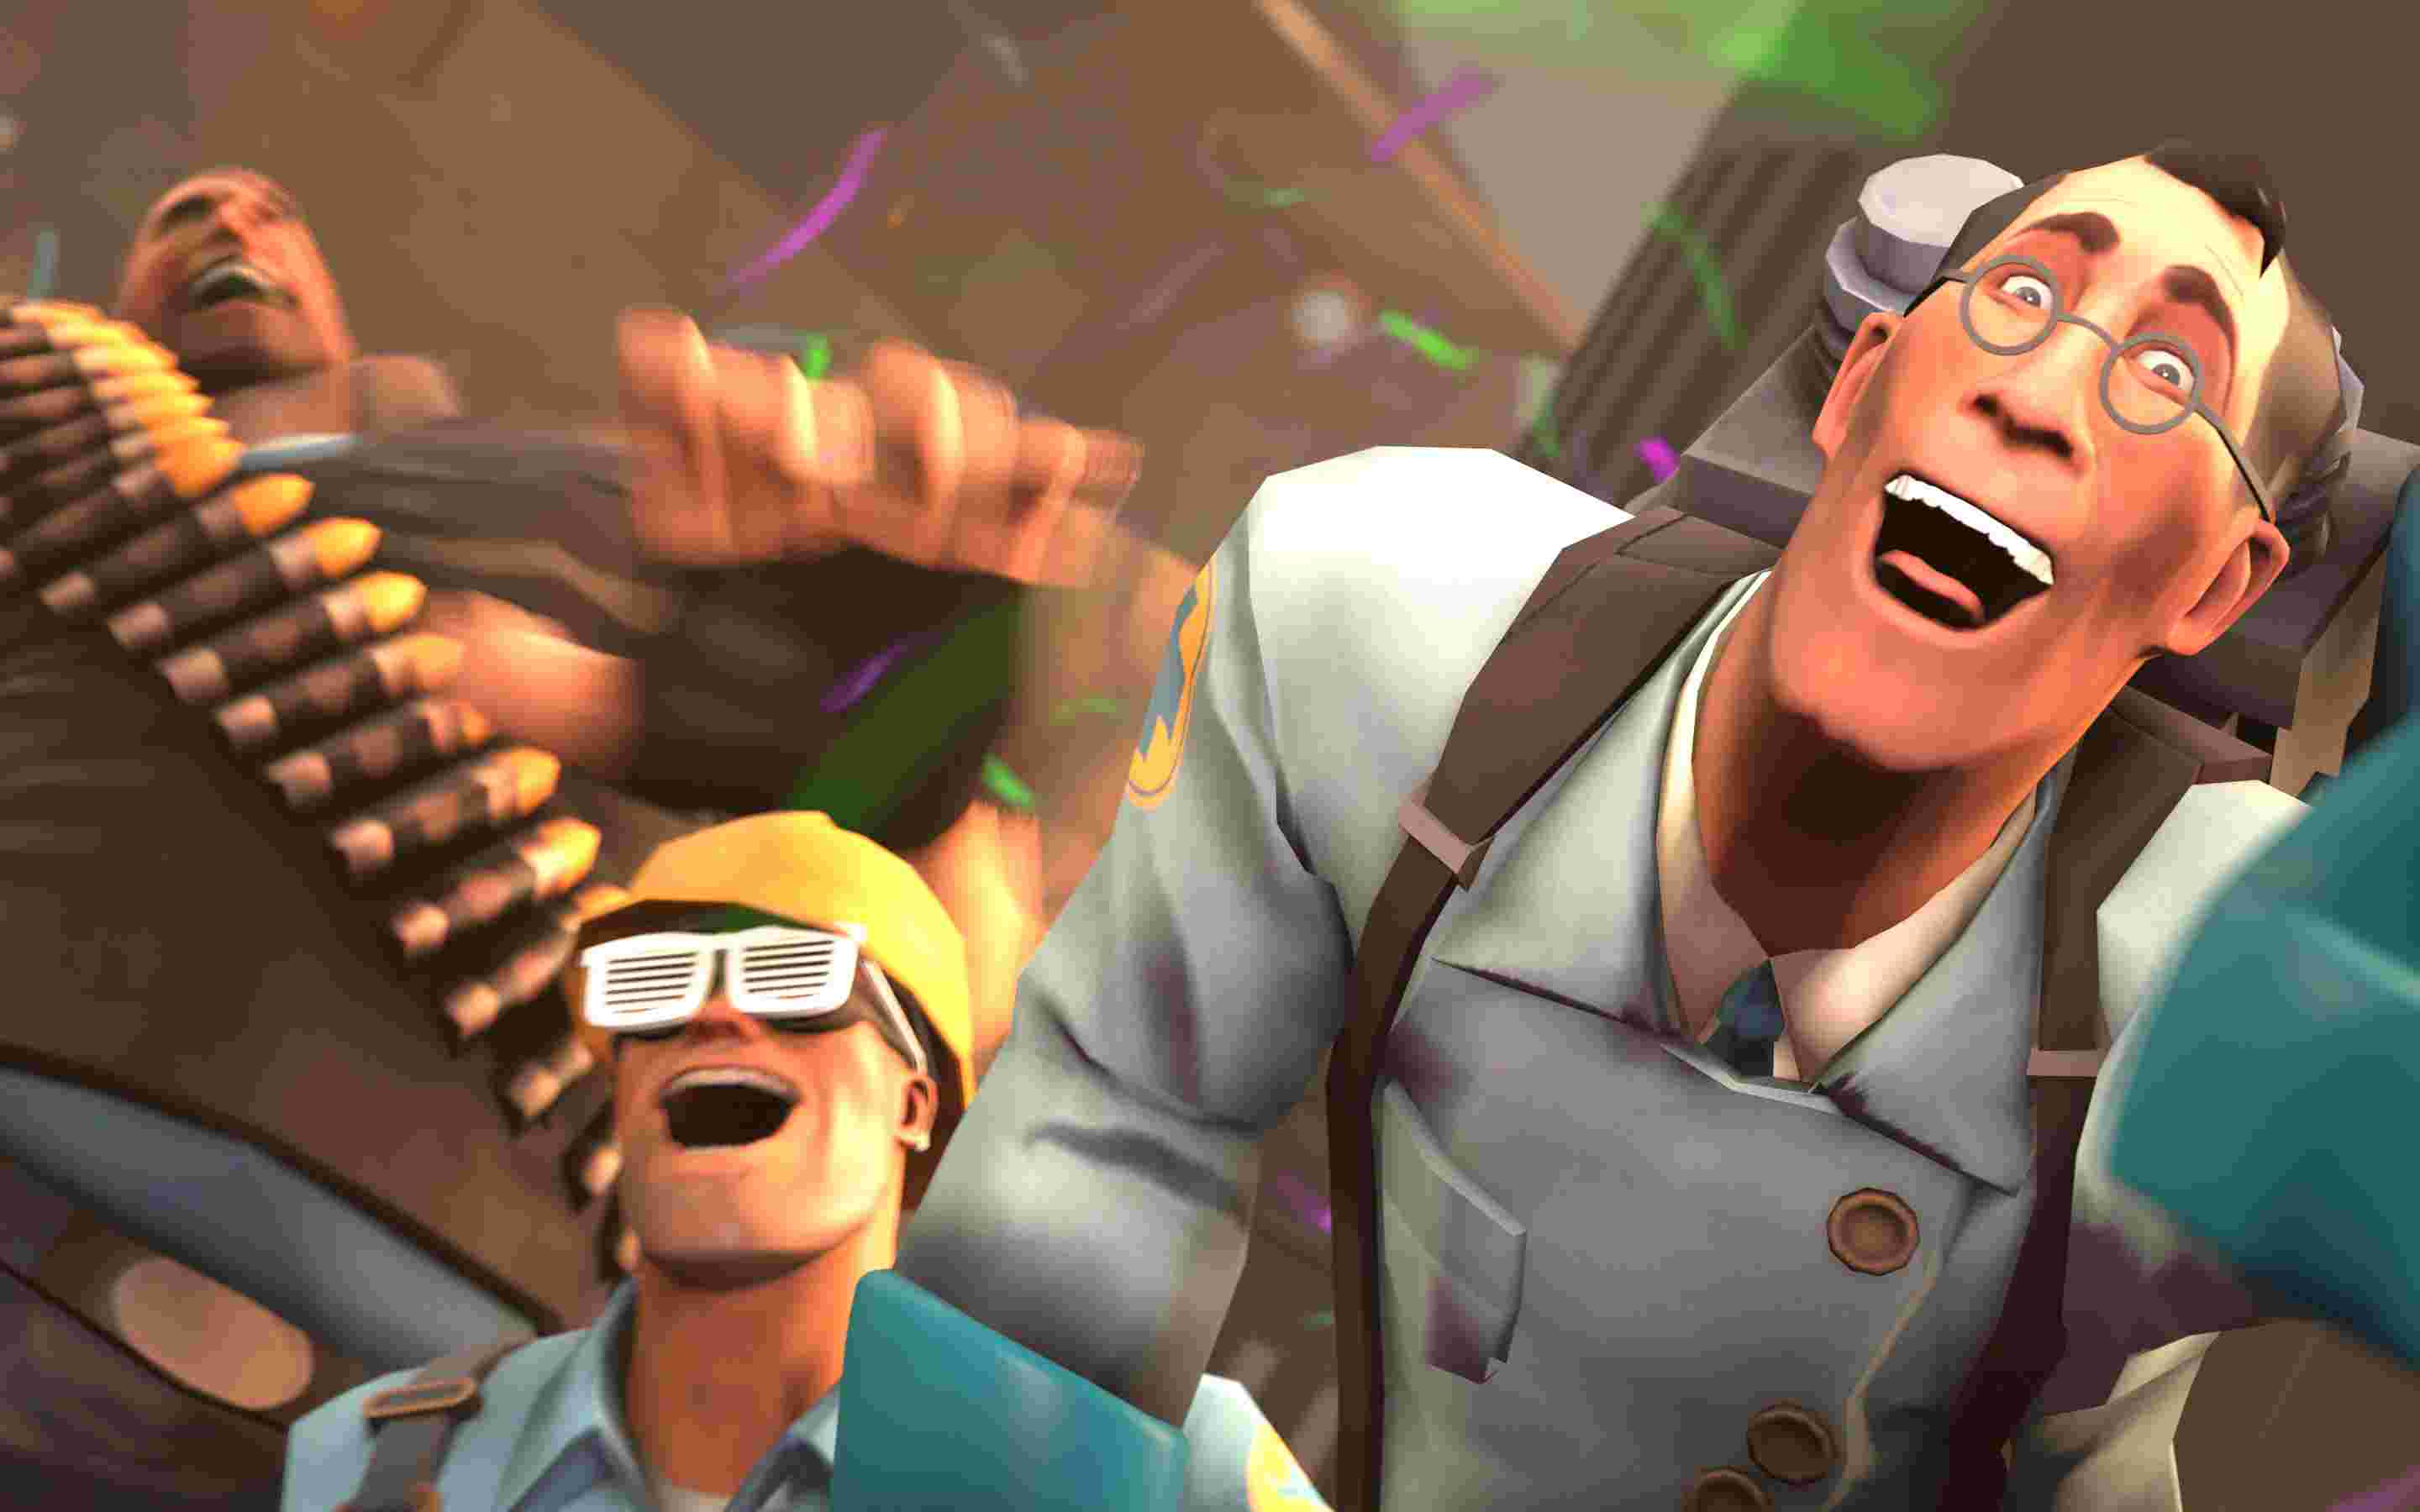 team_fortress_2_wallpaper_party_time_by_dunkmovies-d5rg8uv